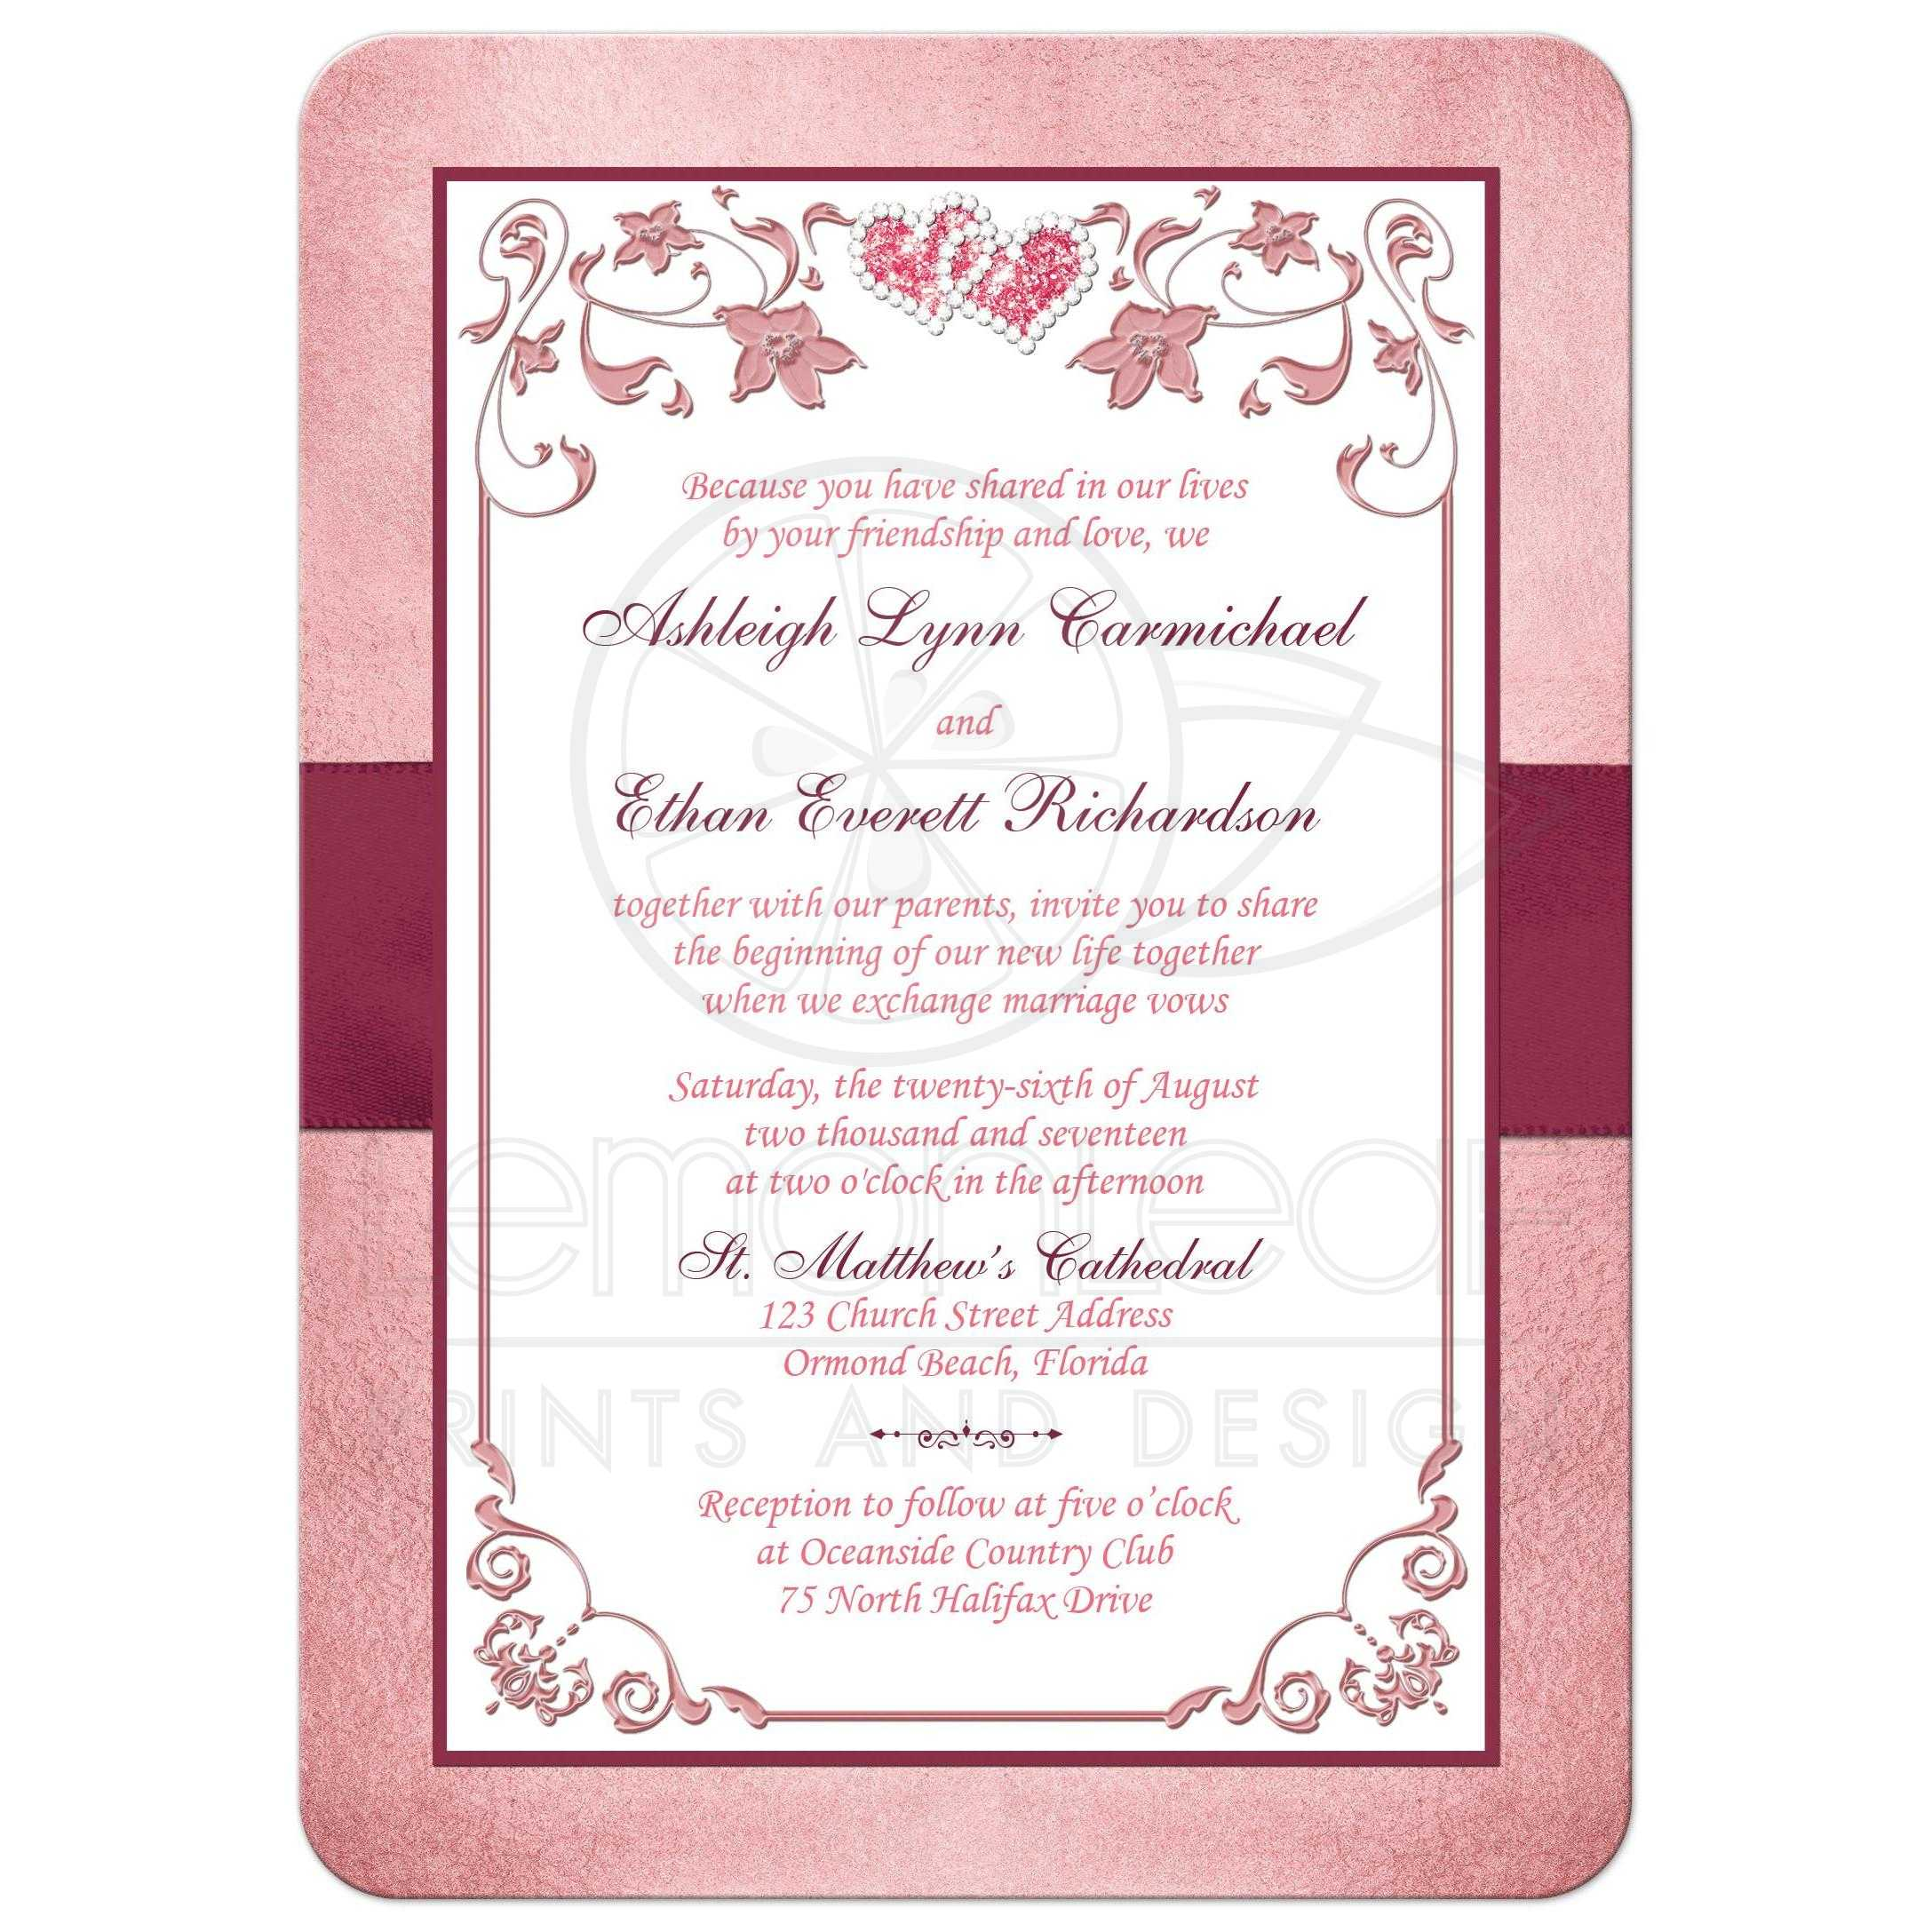 ... Blush Pink, Rose Gold And White Floral Wedding Invite With Burgundy  Ribbon